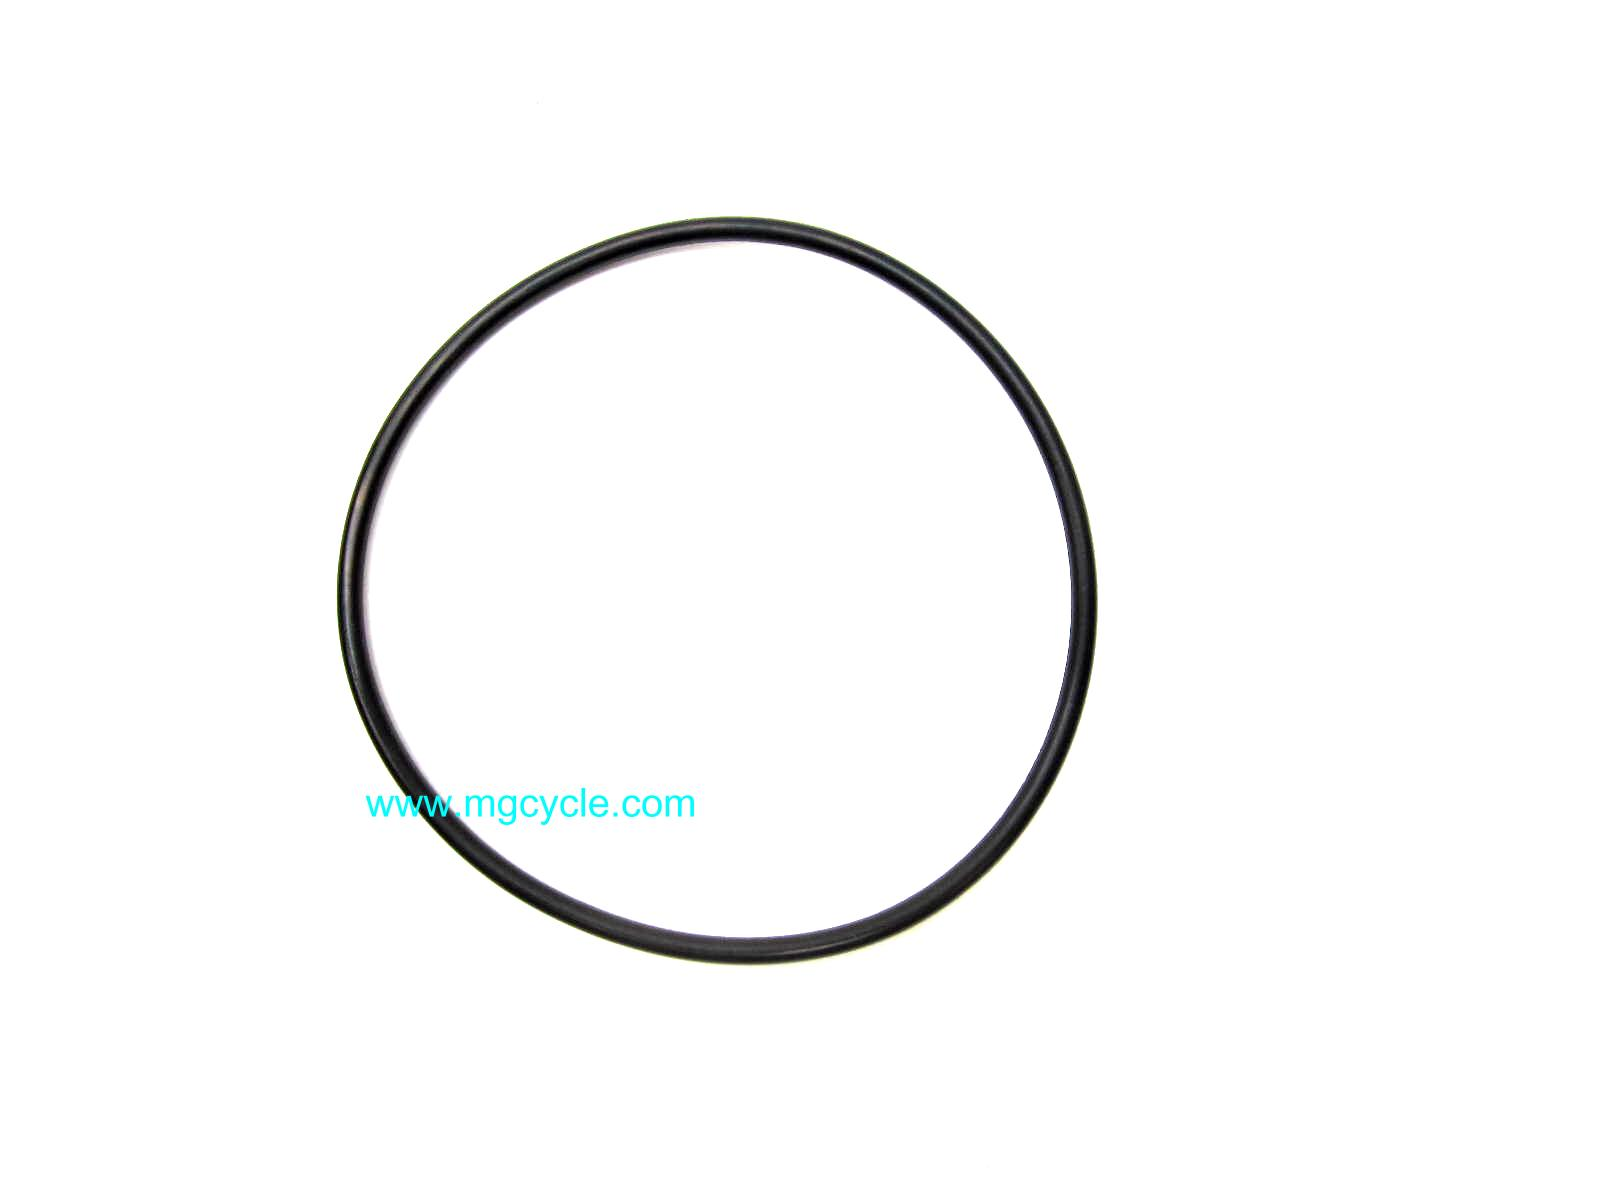 Oil filter cover o ring, Cent V11 Sport, speedo oring Eld Police